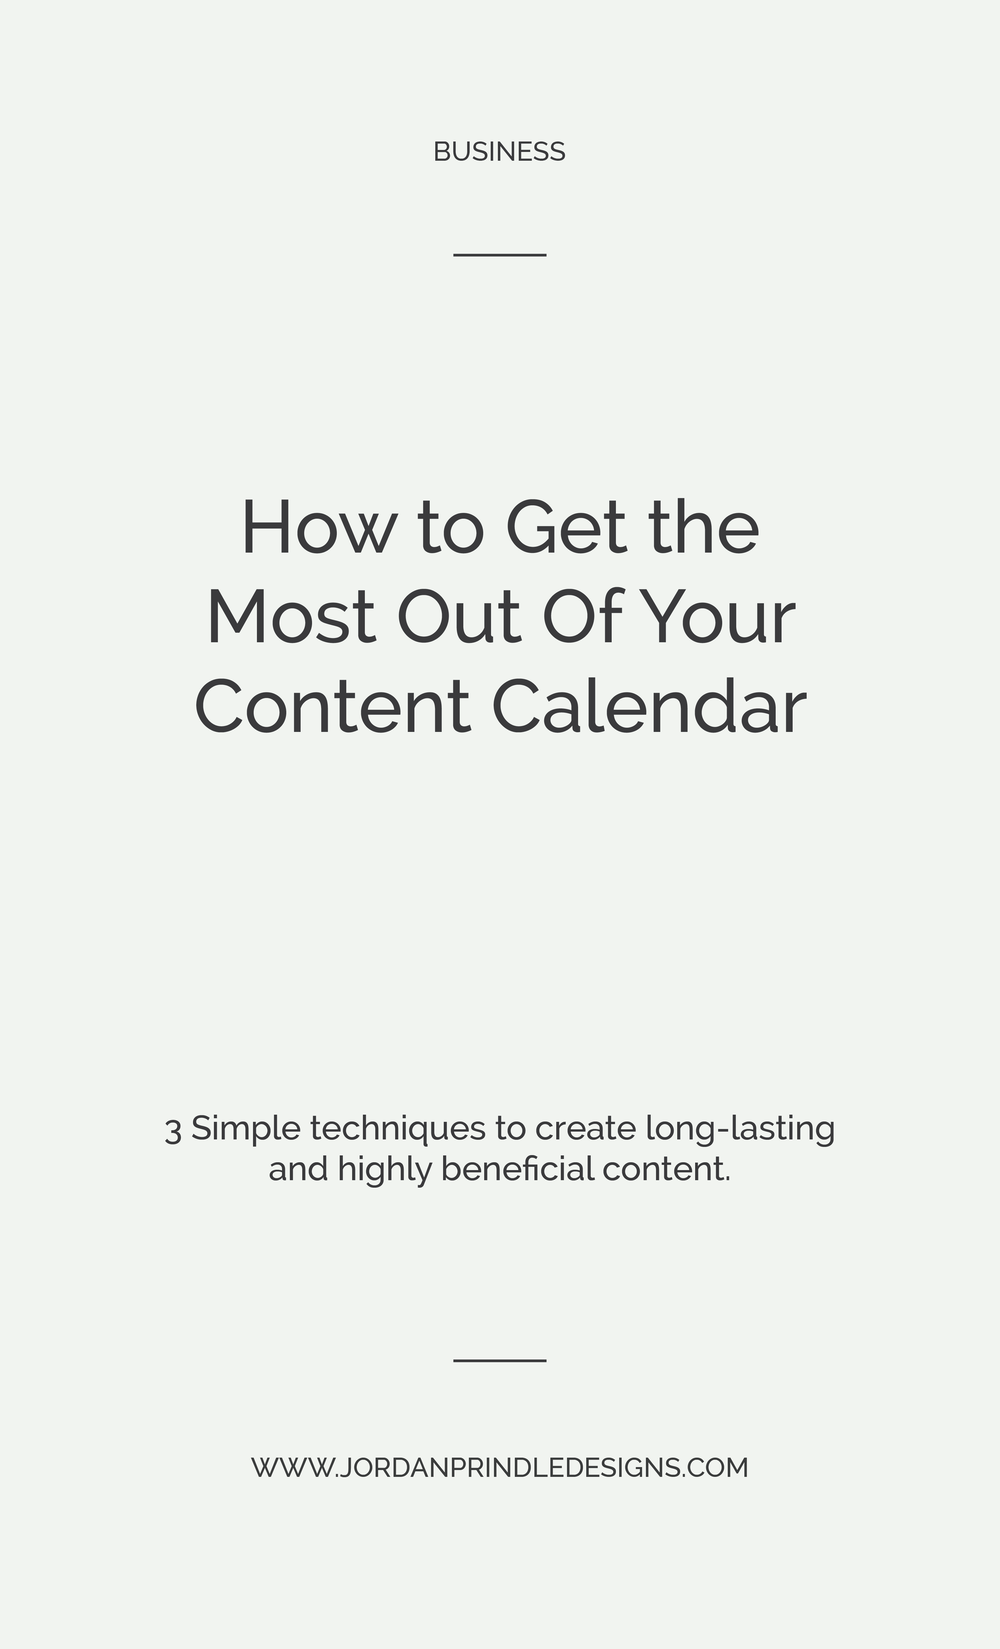 How to Get the Most Out Of Your Content Calendar | Blogging and content marketing are vital to any small business owner. In this recent post, I'm sharing how you can blog successfully with ease. Keep reading: www.jordanprindledesigns.com #blogging #smallbusiness #contentmarketing